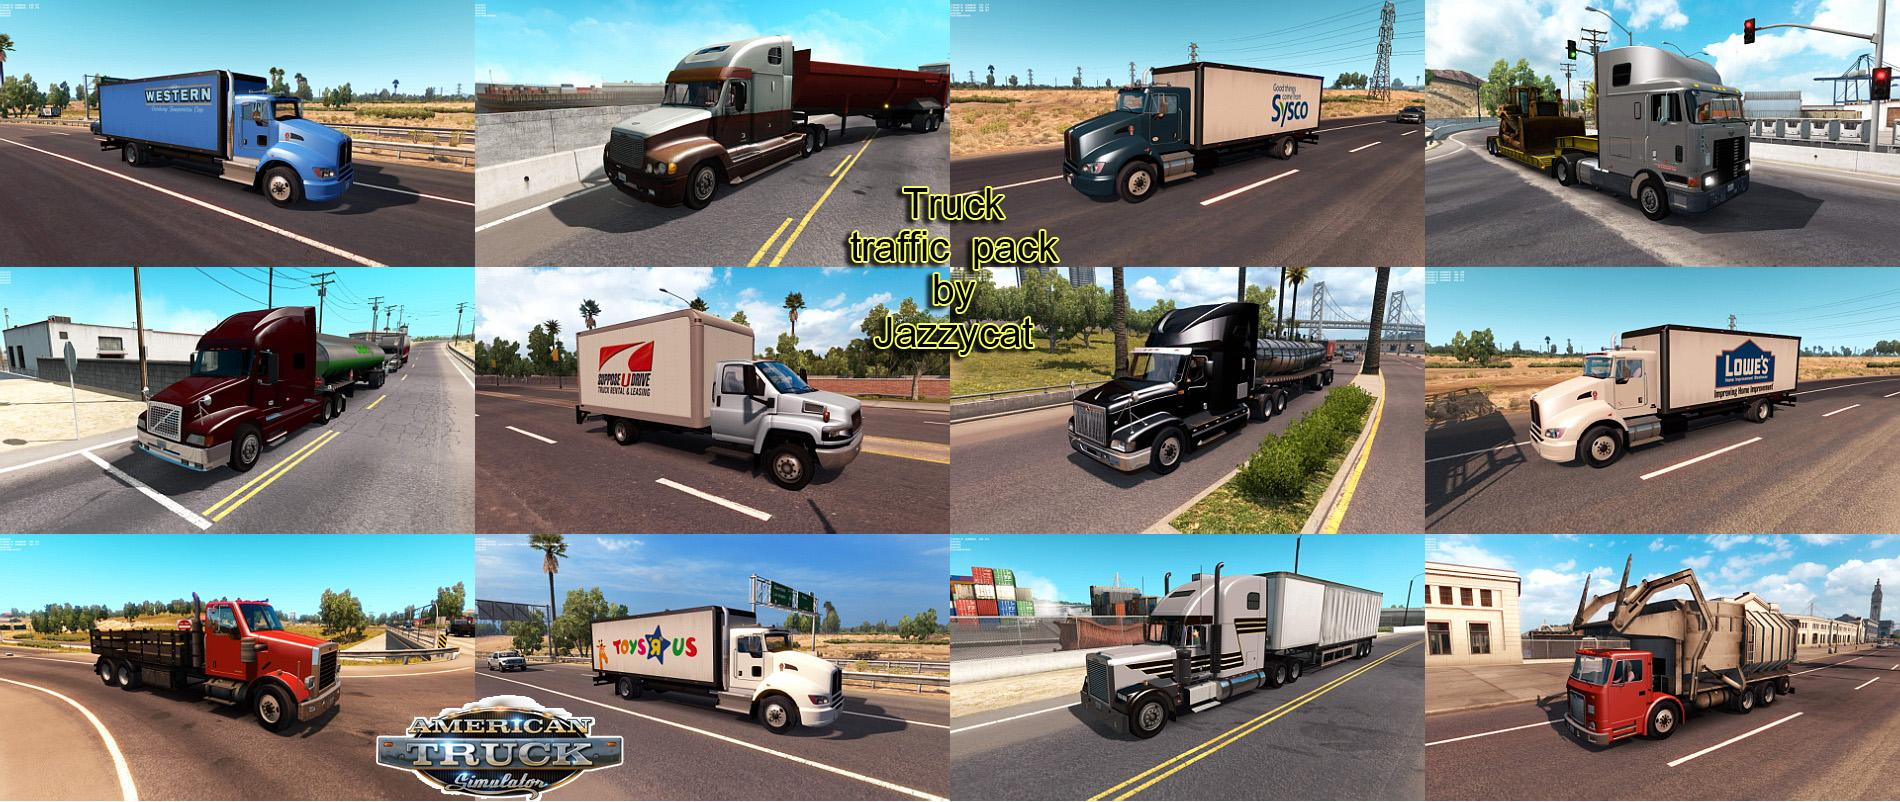 truck-traffic-pack-by-jazzycat-v1-4-2_1